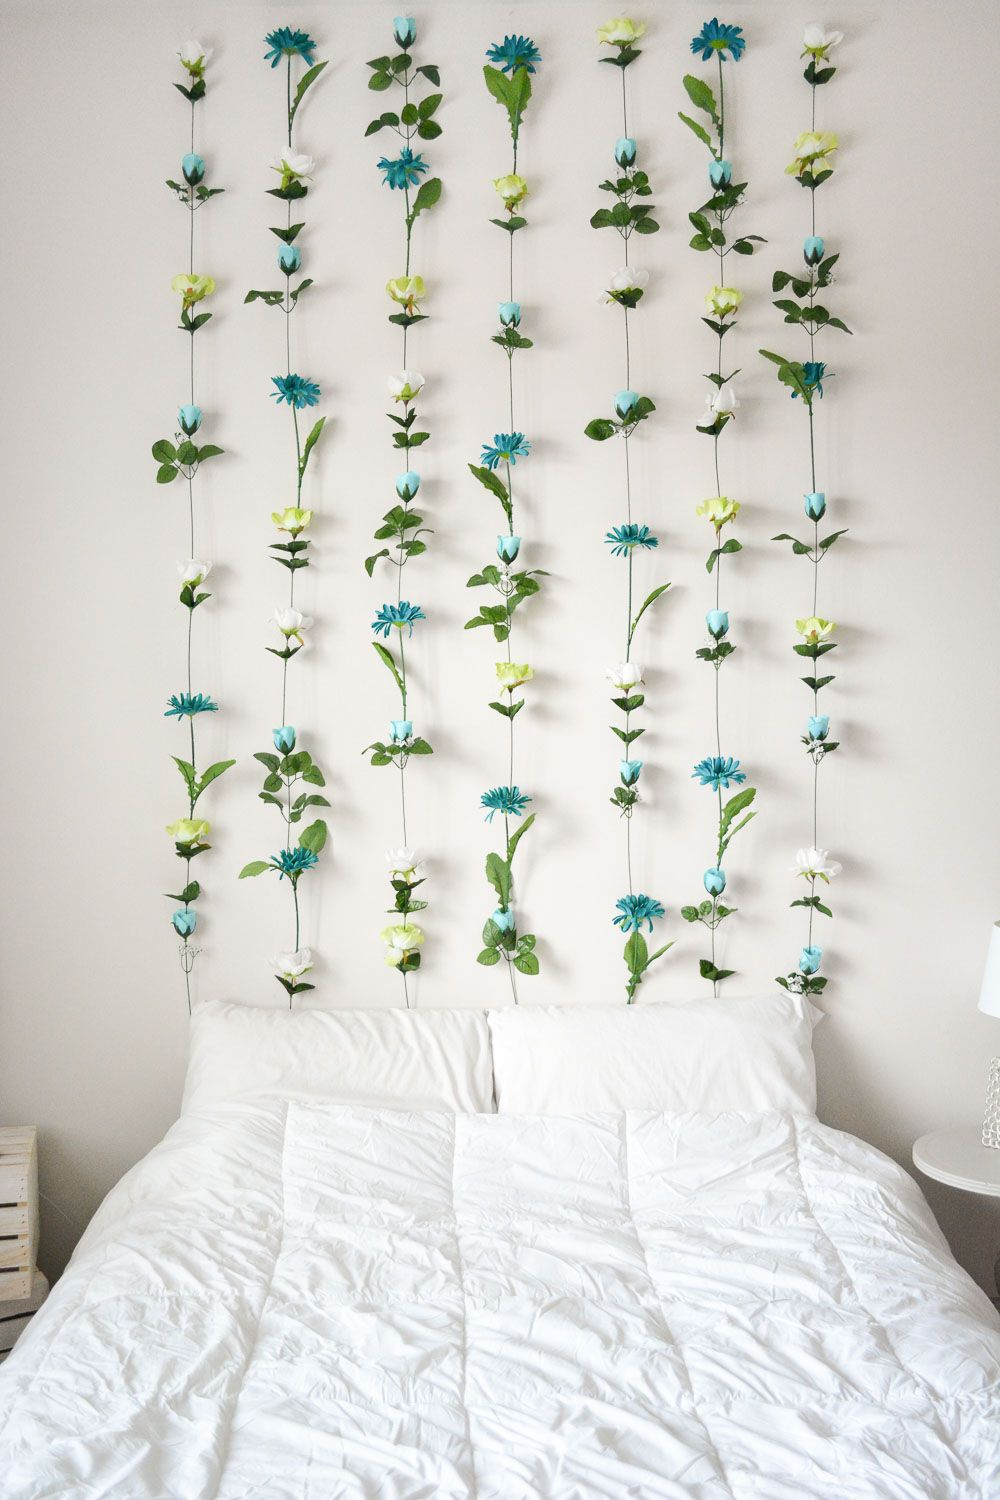 DIY Flower Wall | Diy projects for bedroom, Diy bedroom ...